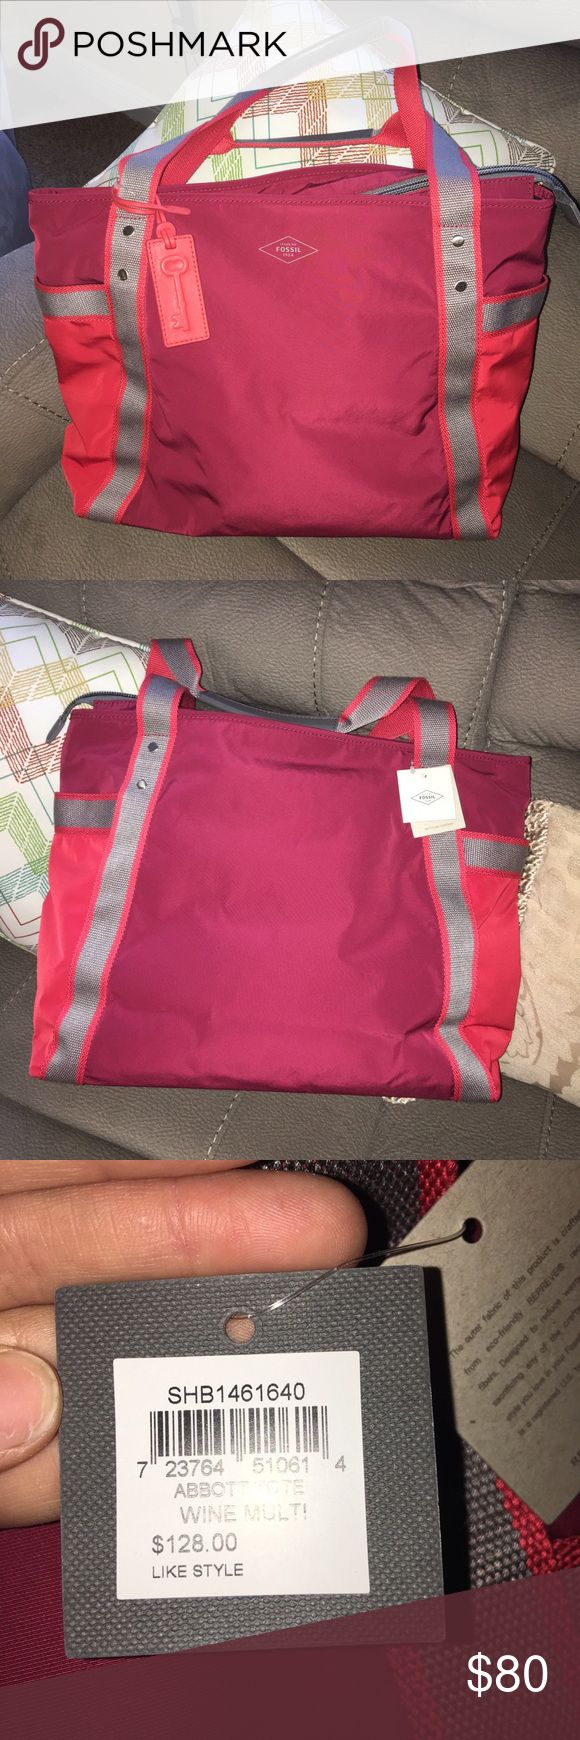 New Fossil Abbott nylon tote bag Brand new with tags! Comes from a smoke free home! This bag is made from 9 recycled plastic bottles! There is pockets on each side of the bag to hold more belongings! Perfect as a beach bag or as diaper bag! Fossil Bags Totes